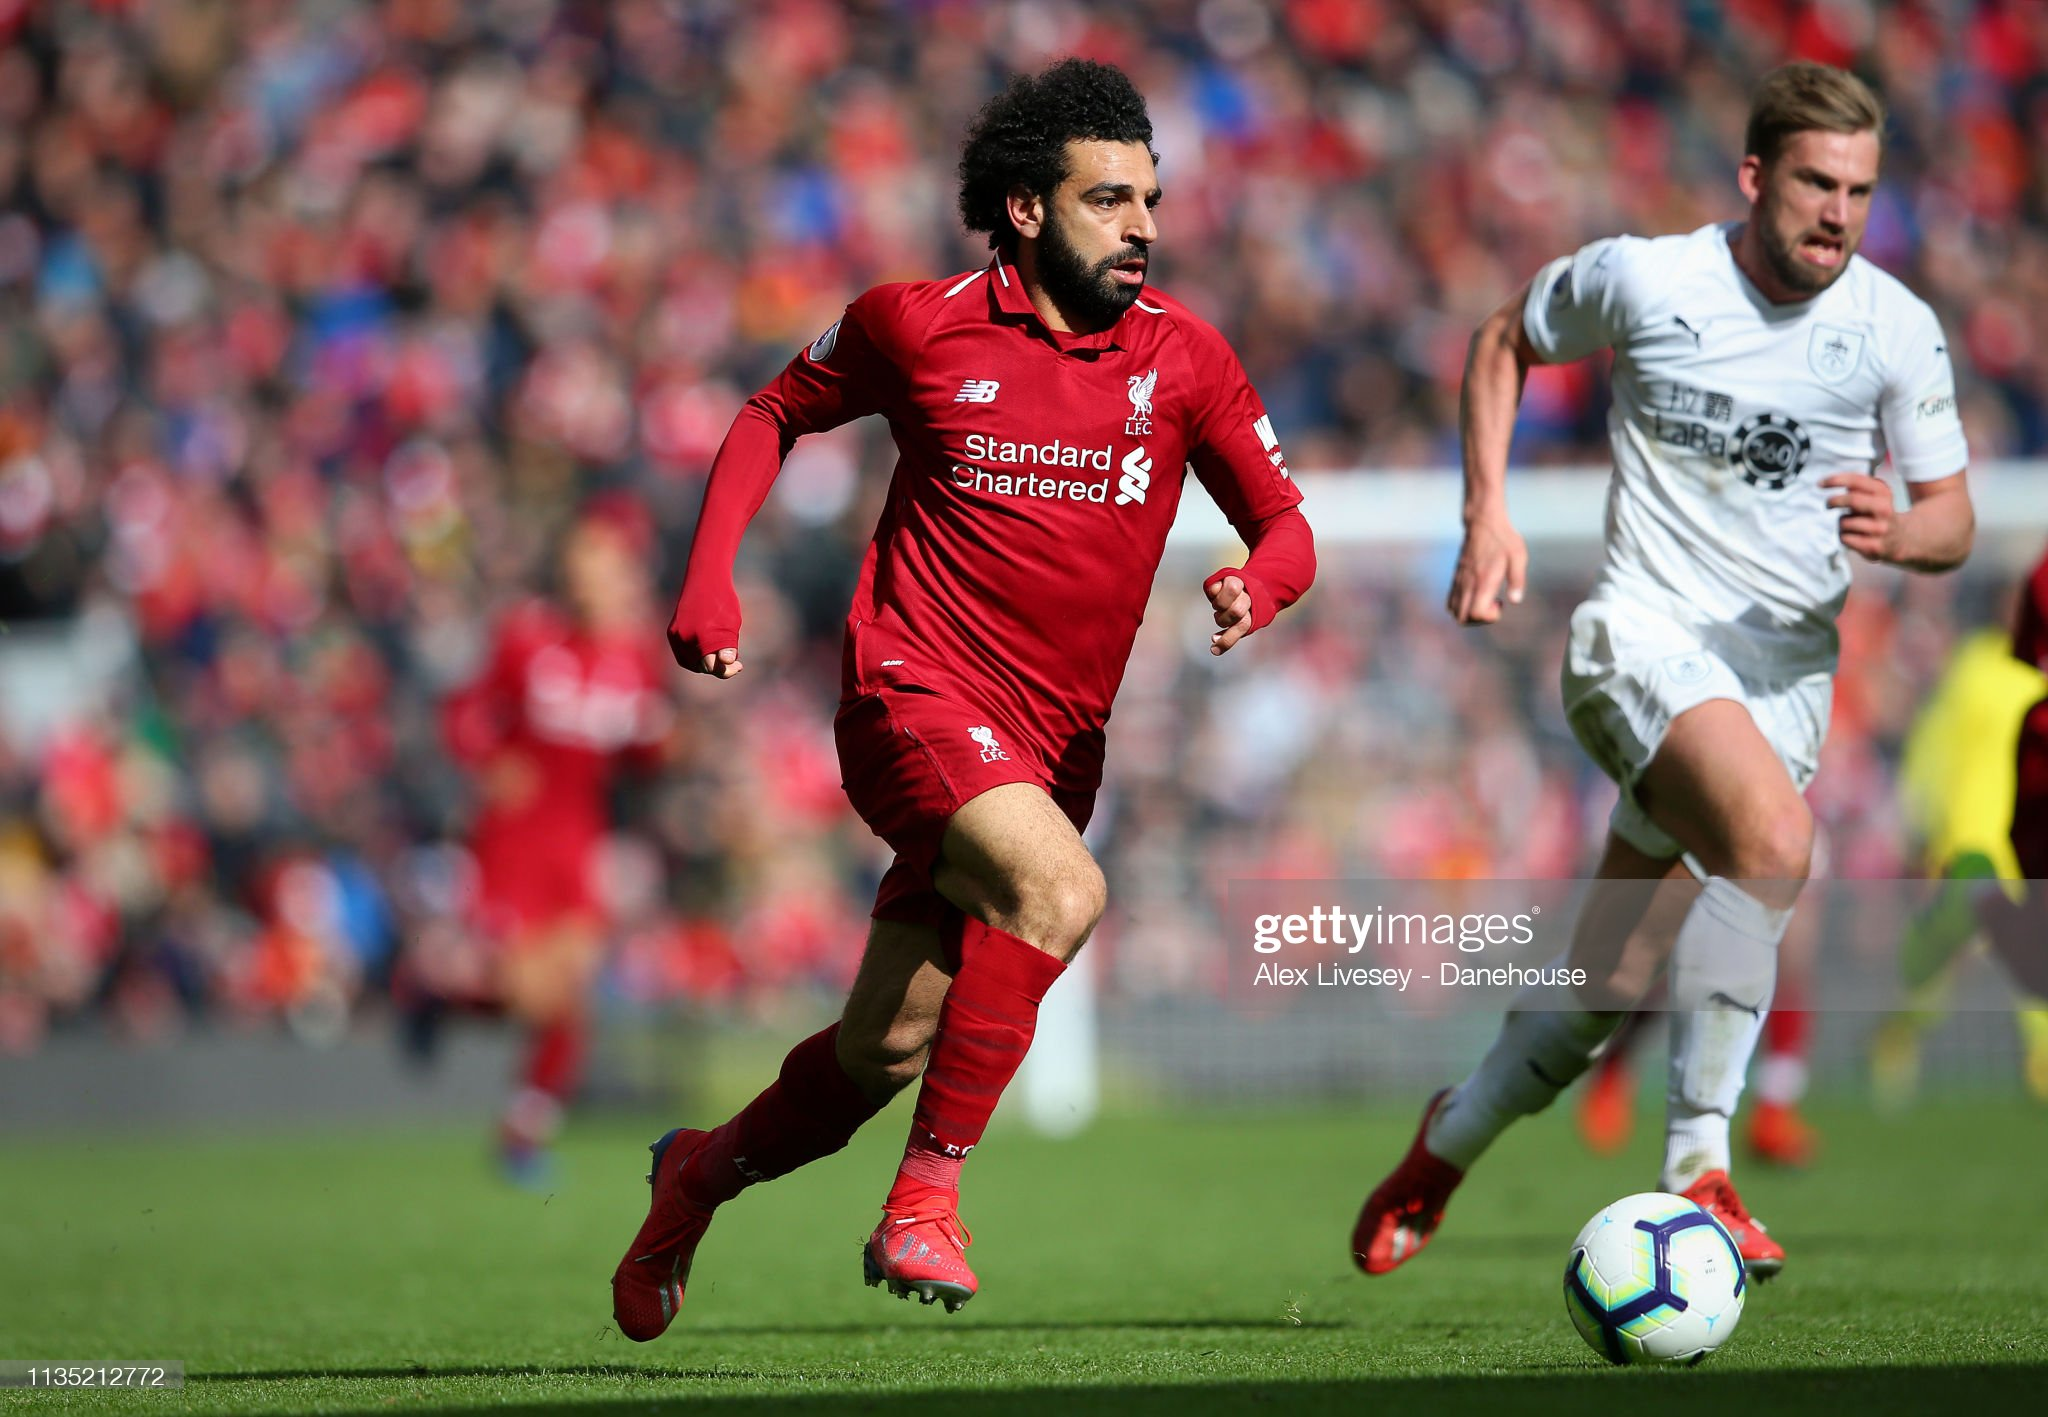 Liverpool vs Burnley Preview, prediction and odds - Soccer ...